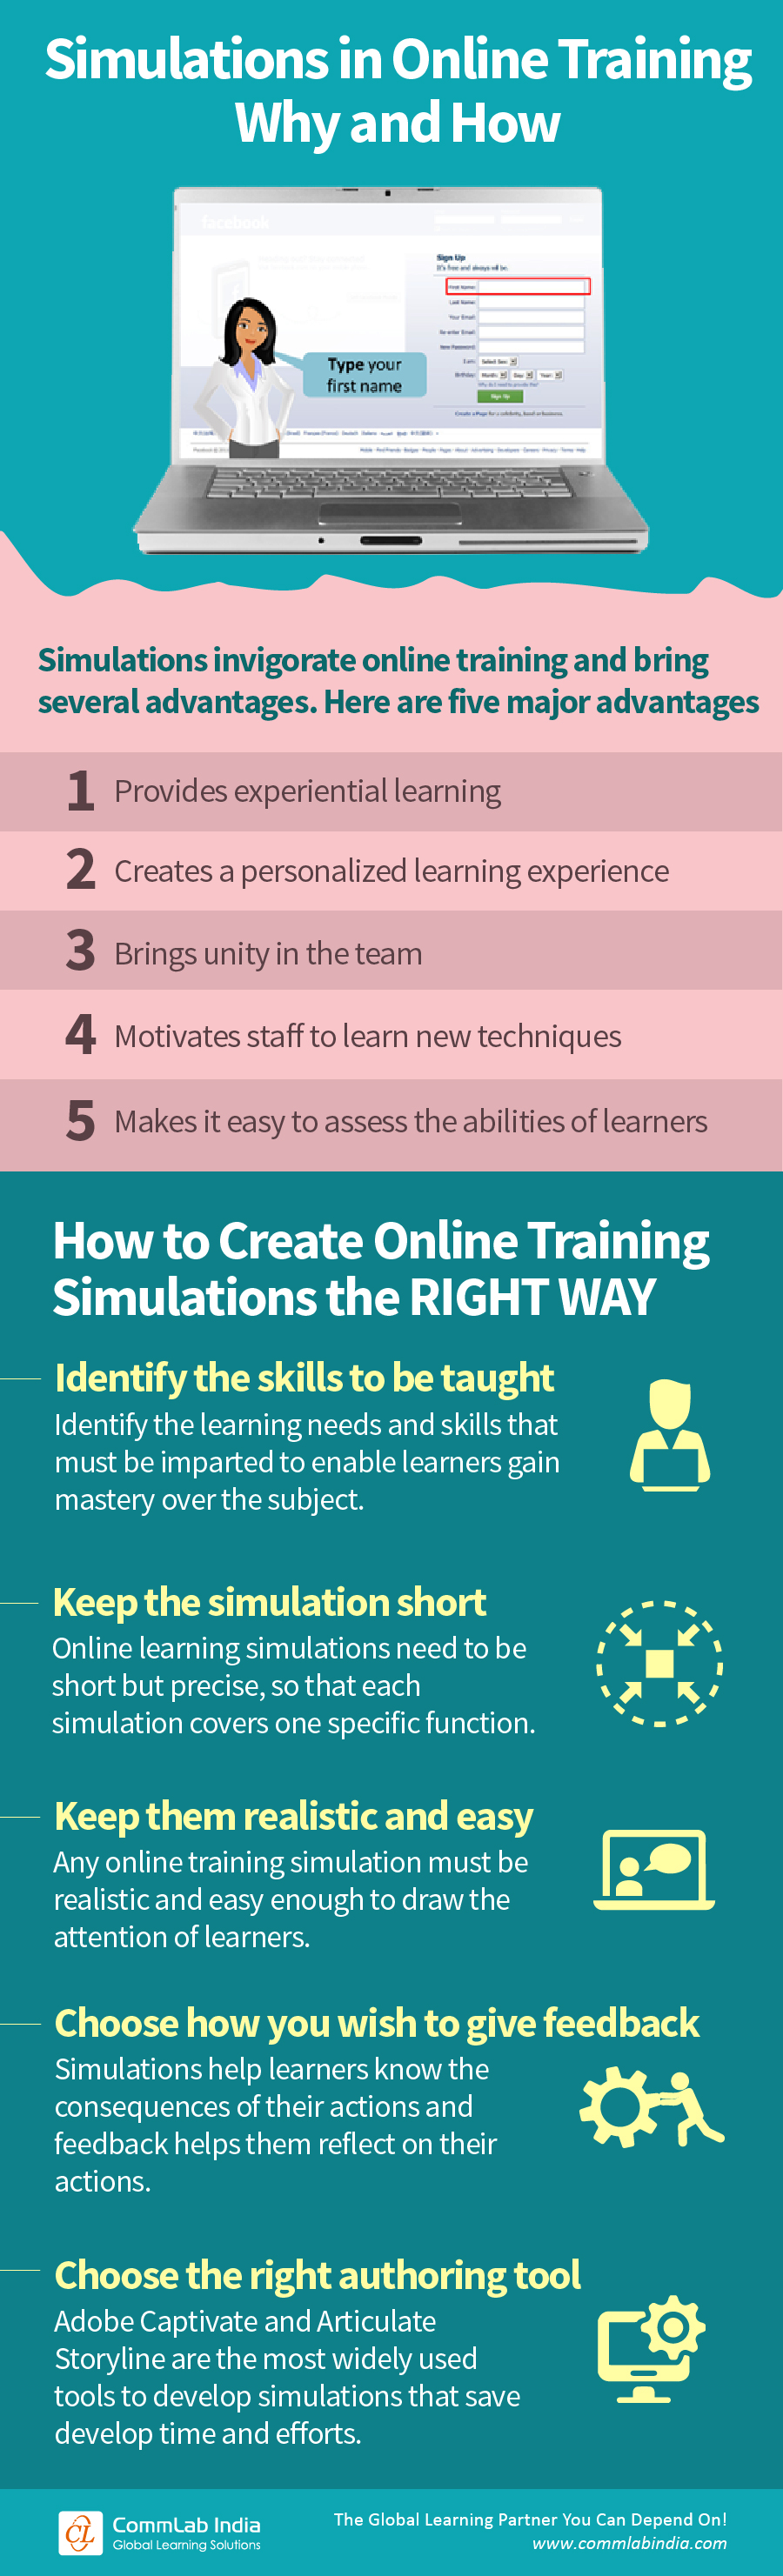 Simulations in Online Training: Why and How [Infographic]